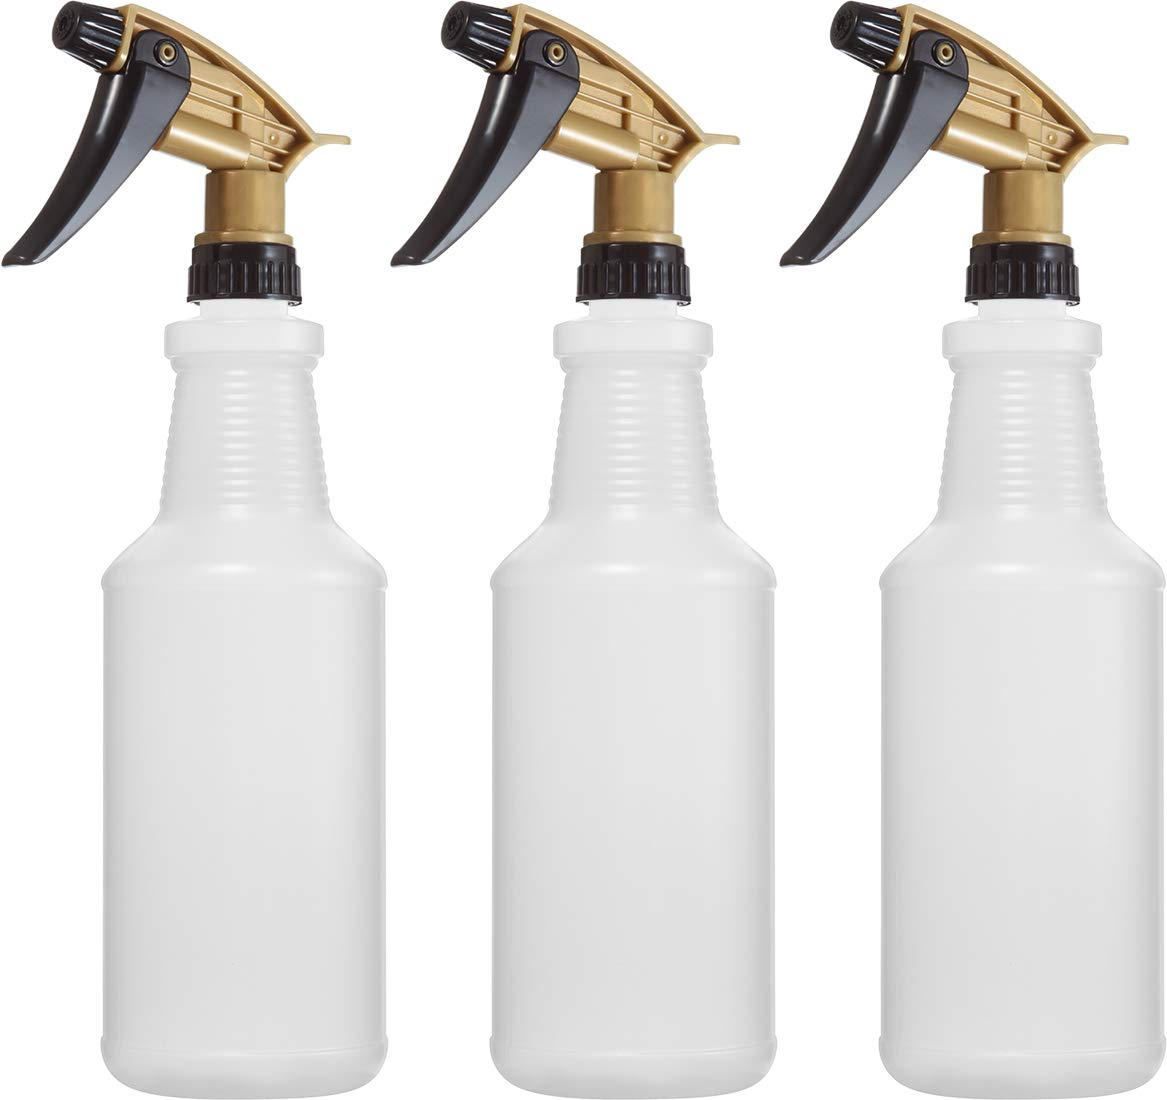 Professional Chemical Resistant Heavy Duty Bottles 32 oz, for All Acid Based Cleaning Solutions, N11 Acid Resistant Fully Adjustable Sprayer, Value Pack of 3